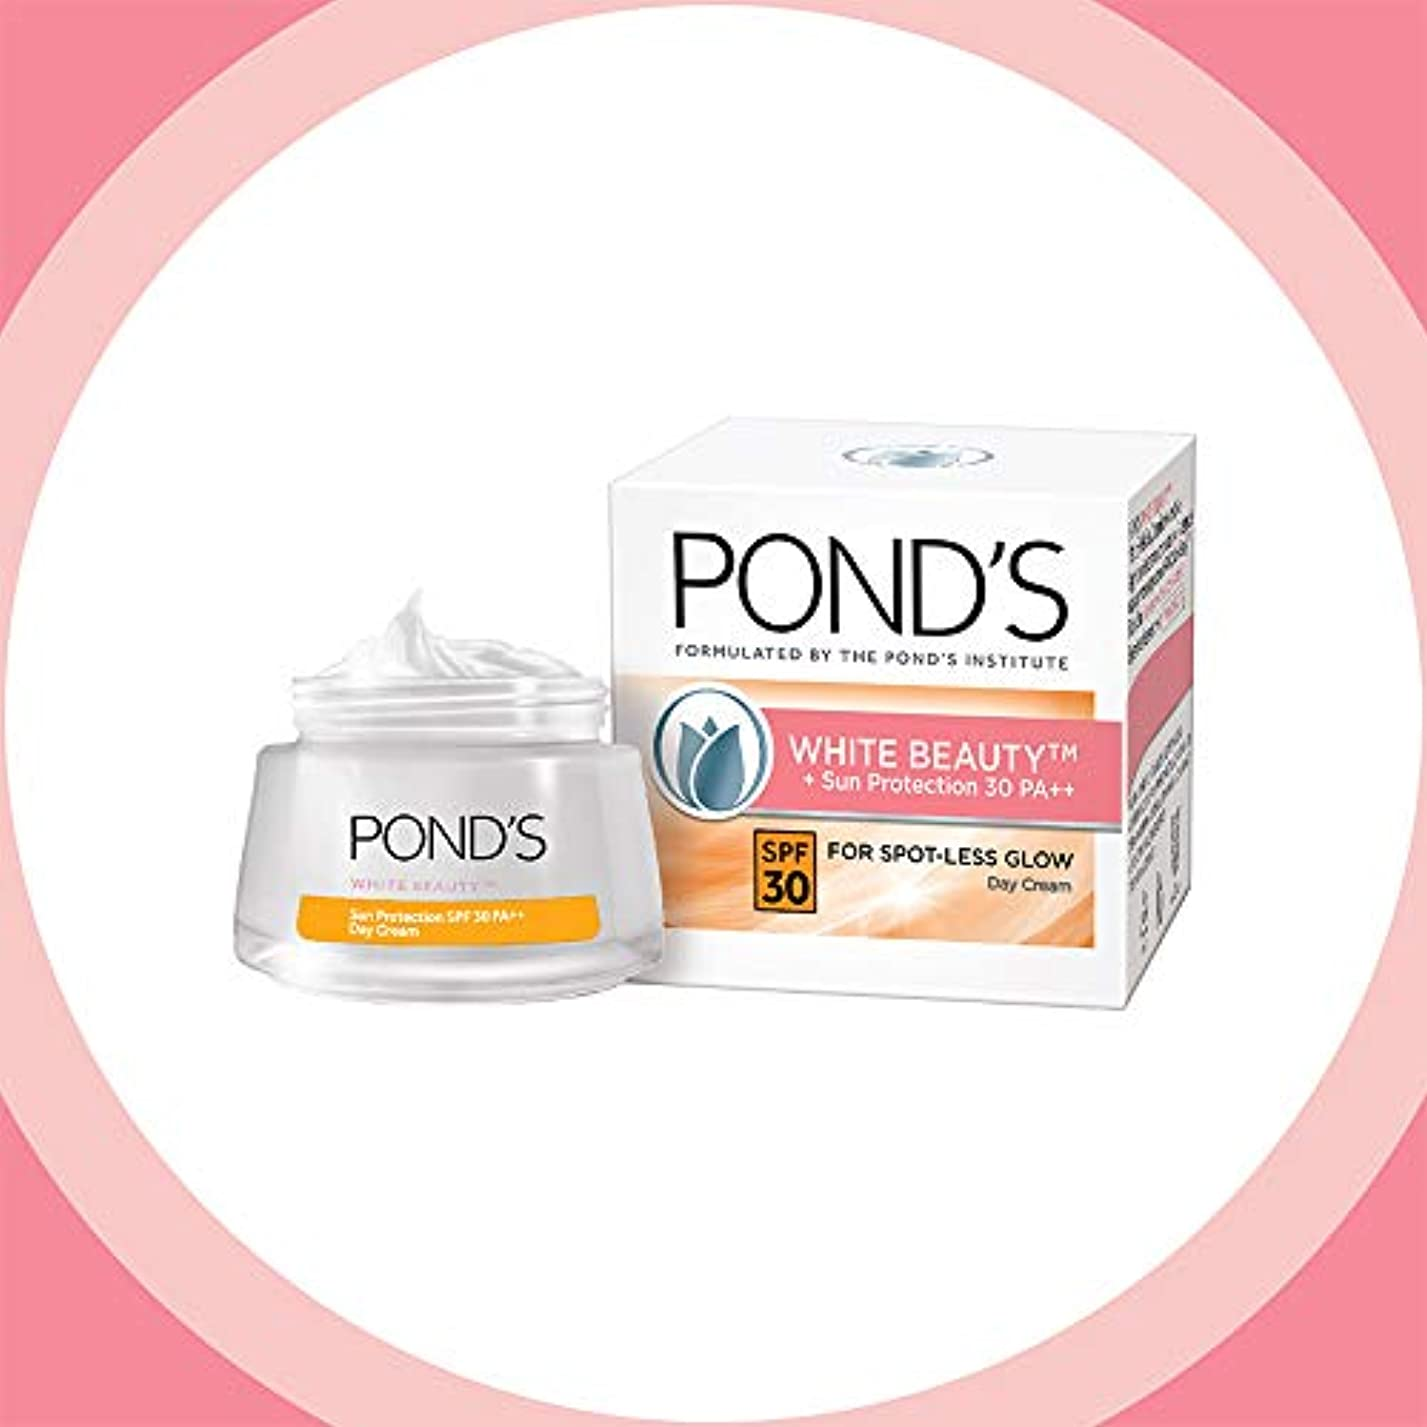 キャンバスワックス土曜日POND'S White Beauty Sun Protection SPF 30 Day Cream, 50 g